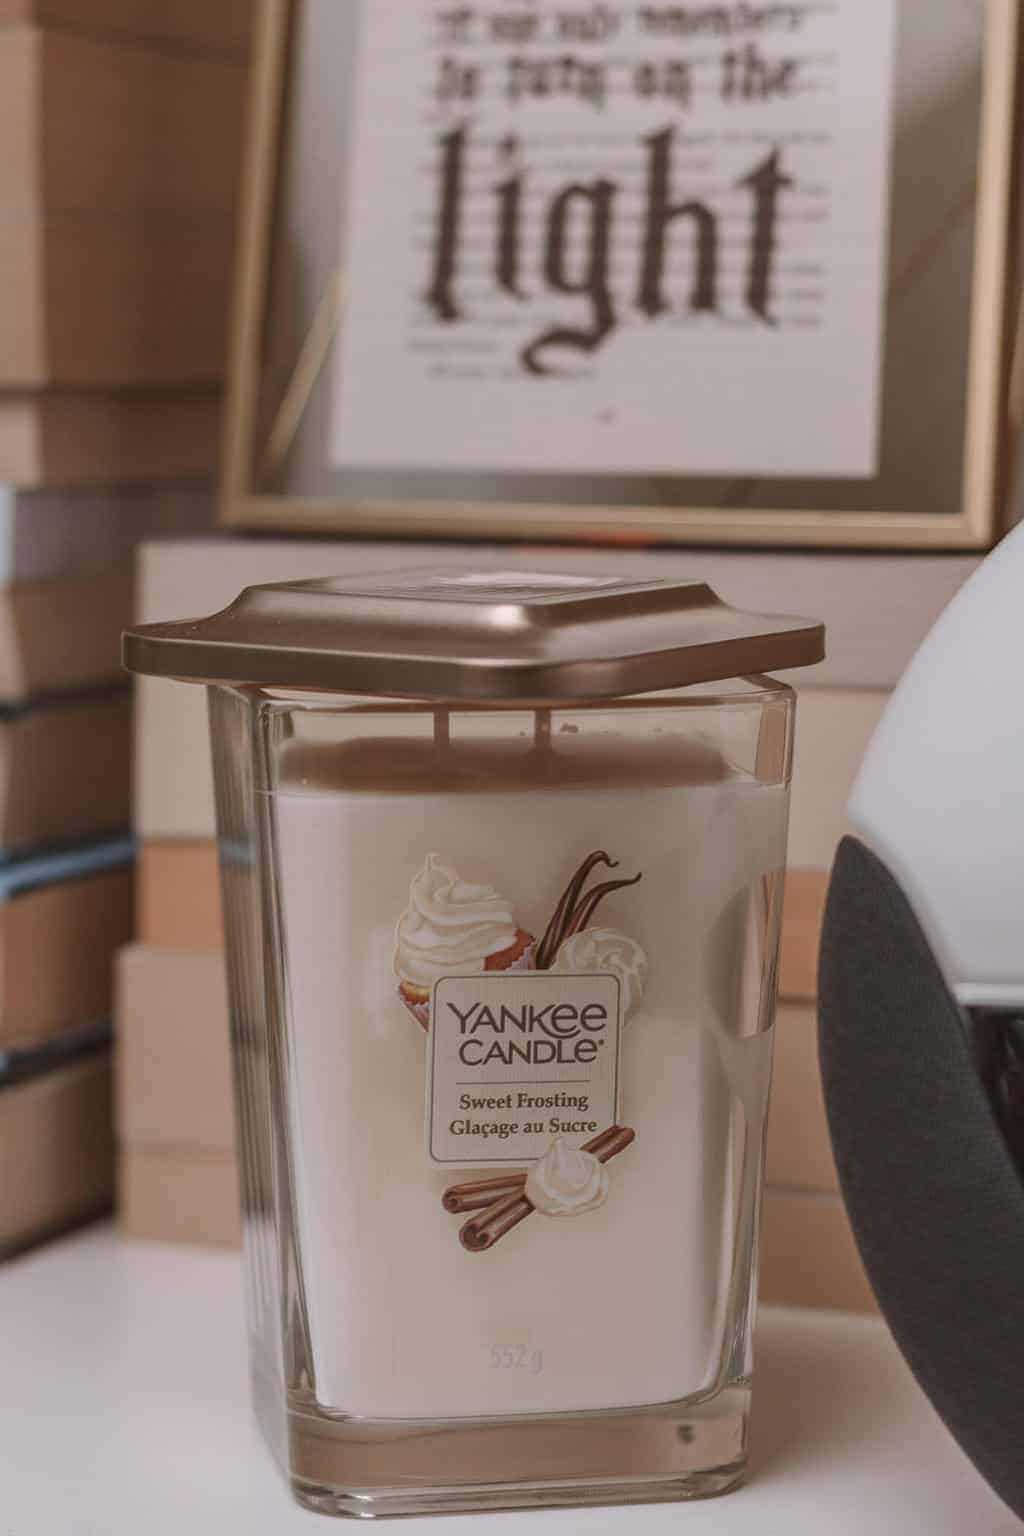 Yankee Candle - Christmas Gift Guide 2018: Brilliant Christmas Gift Ideas For Her #whatshotblog